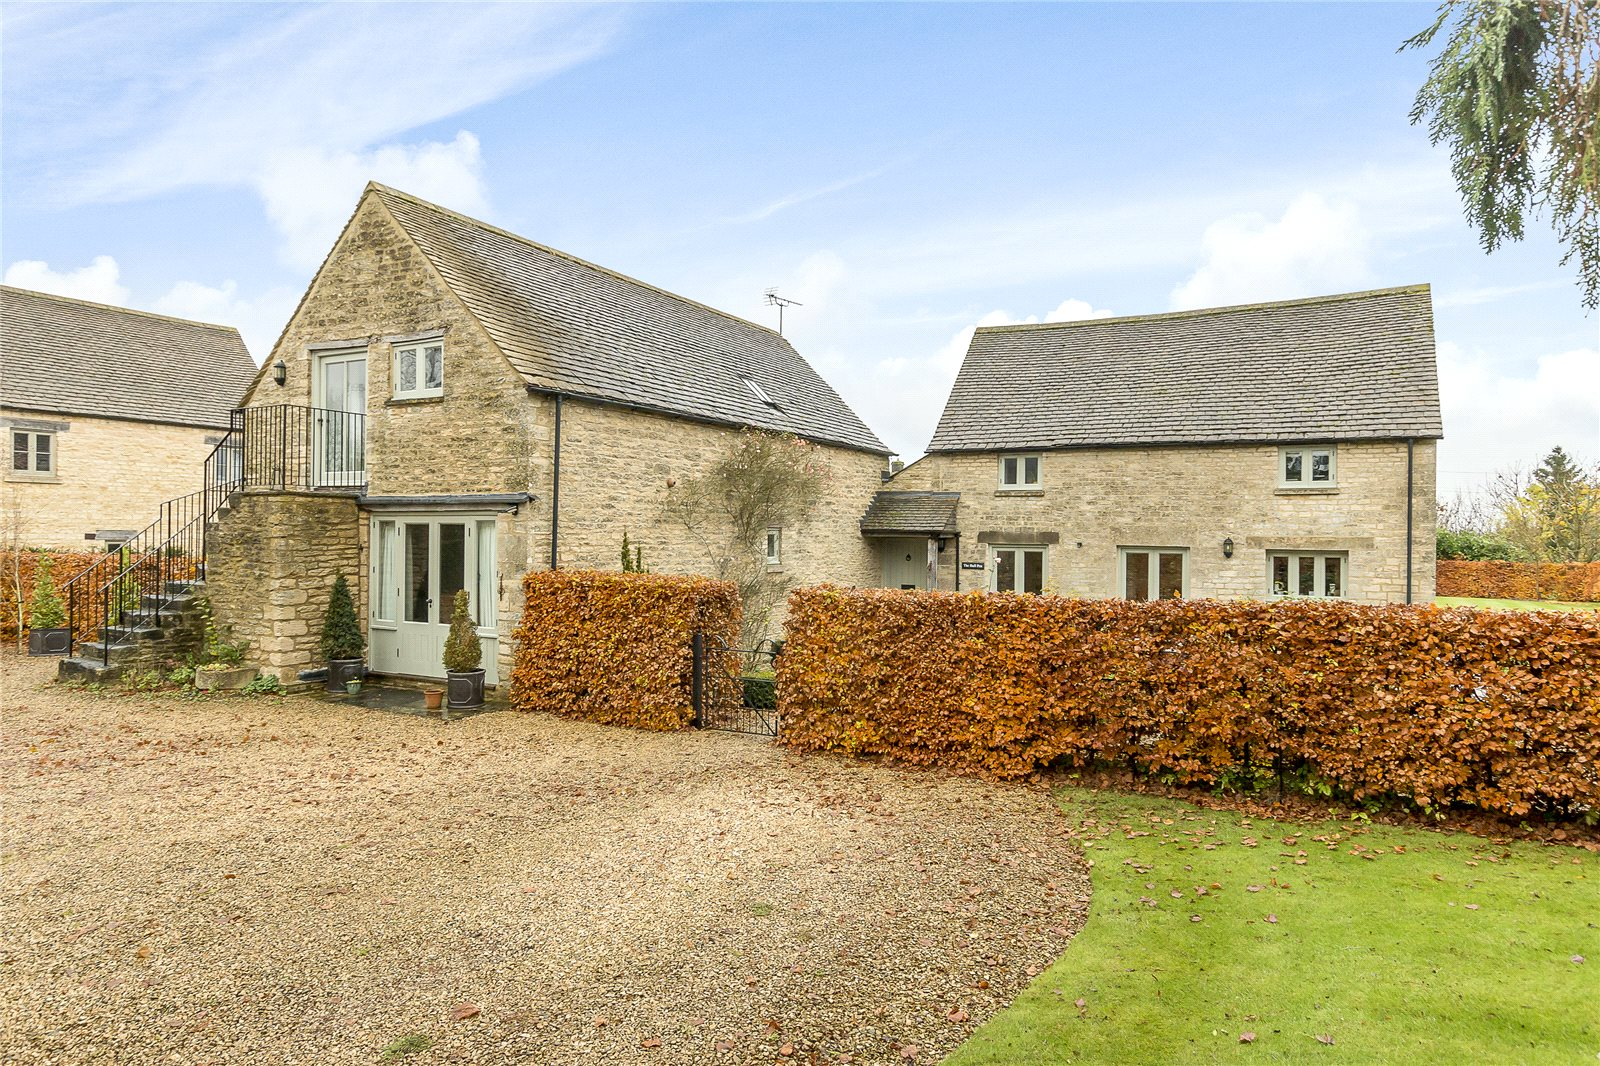 独户住宅 为 销售 在 Lower Farm, Poole Keynes, Cirencester, Gloucestershire, GL7 Cirencester, 英格兰